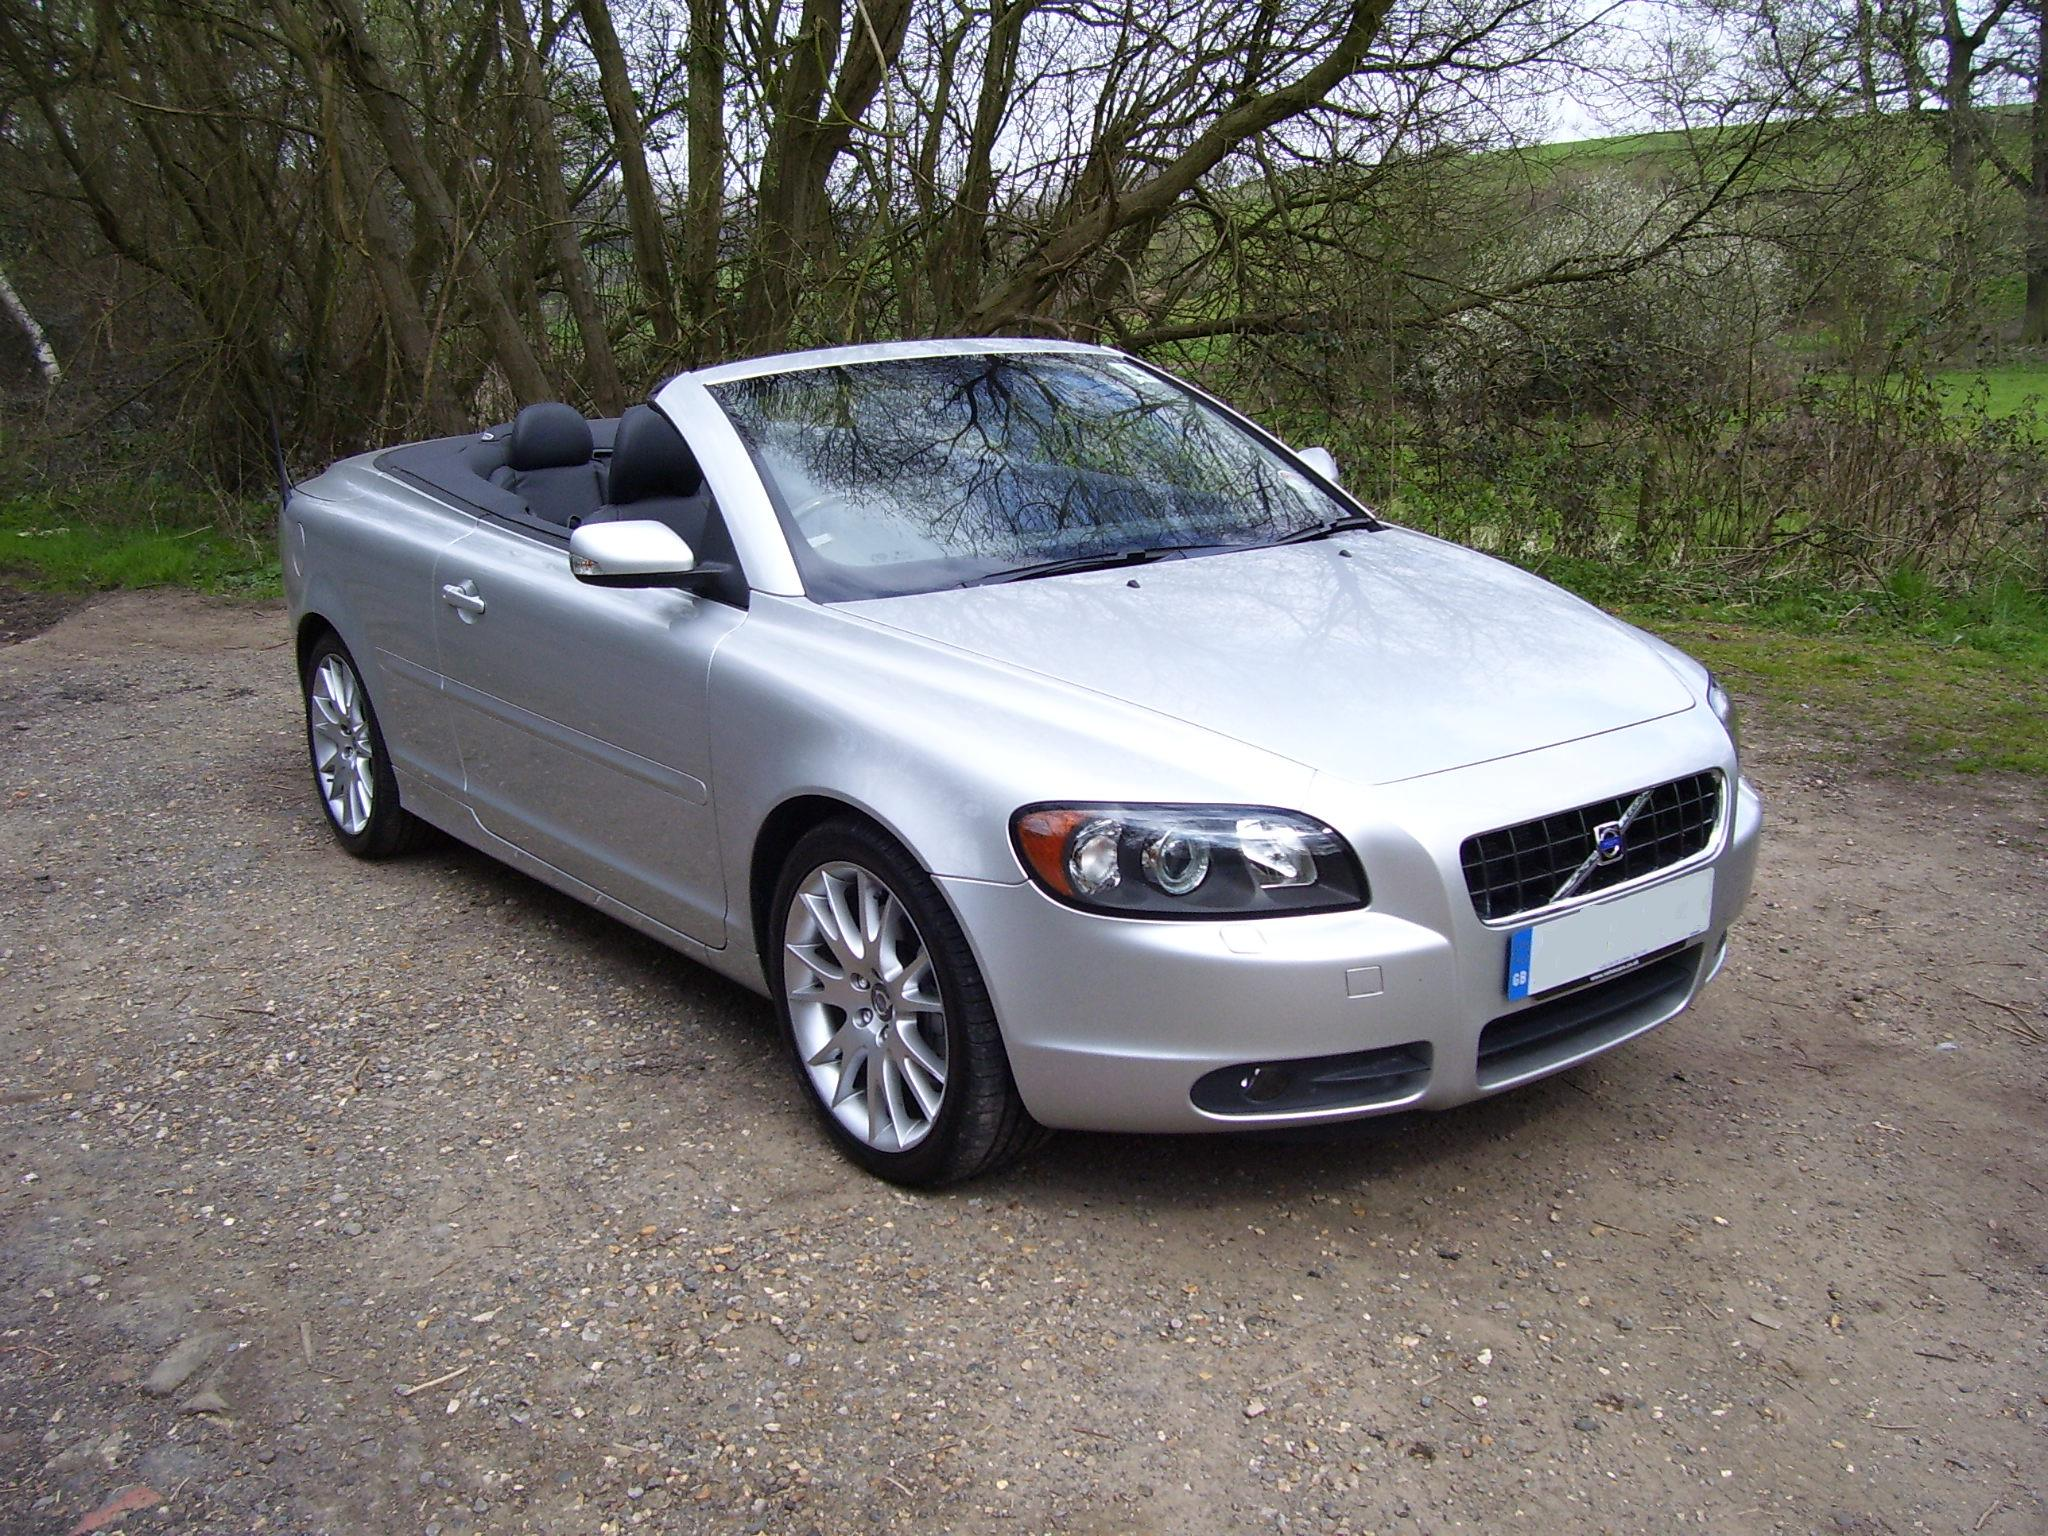 volvo c70 wikipedia rh en wikipedia org 2008 volvo c70 manual top close 2008 volvo c70 convertible manual